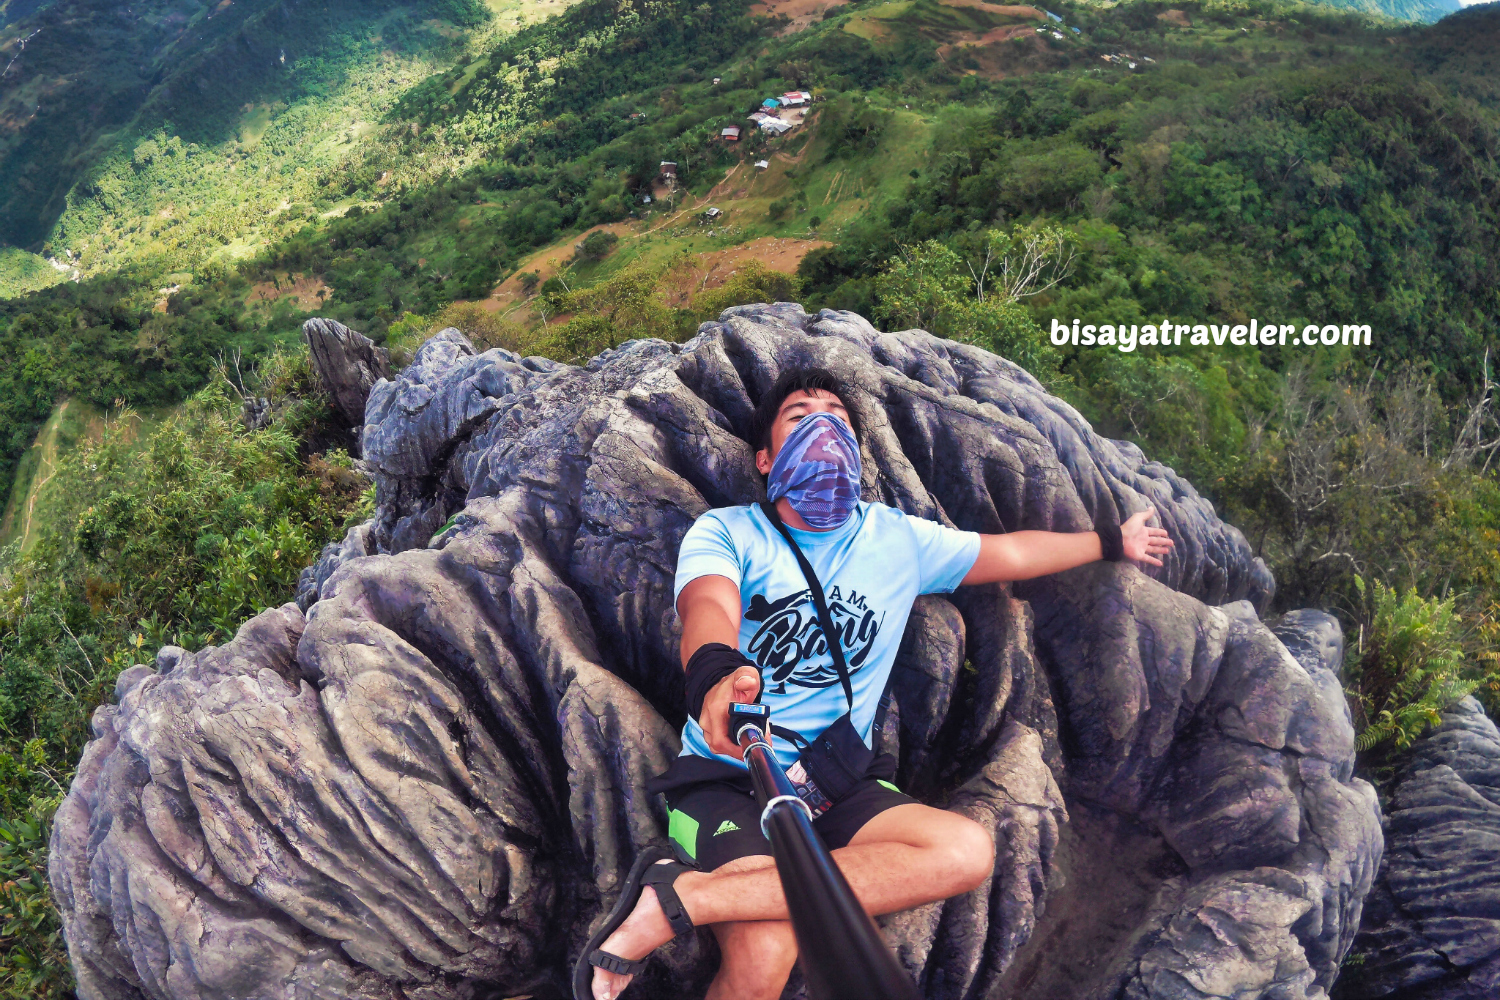 Mount Mauyog: A Memorable Trek Despite The Misses And Setbacks